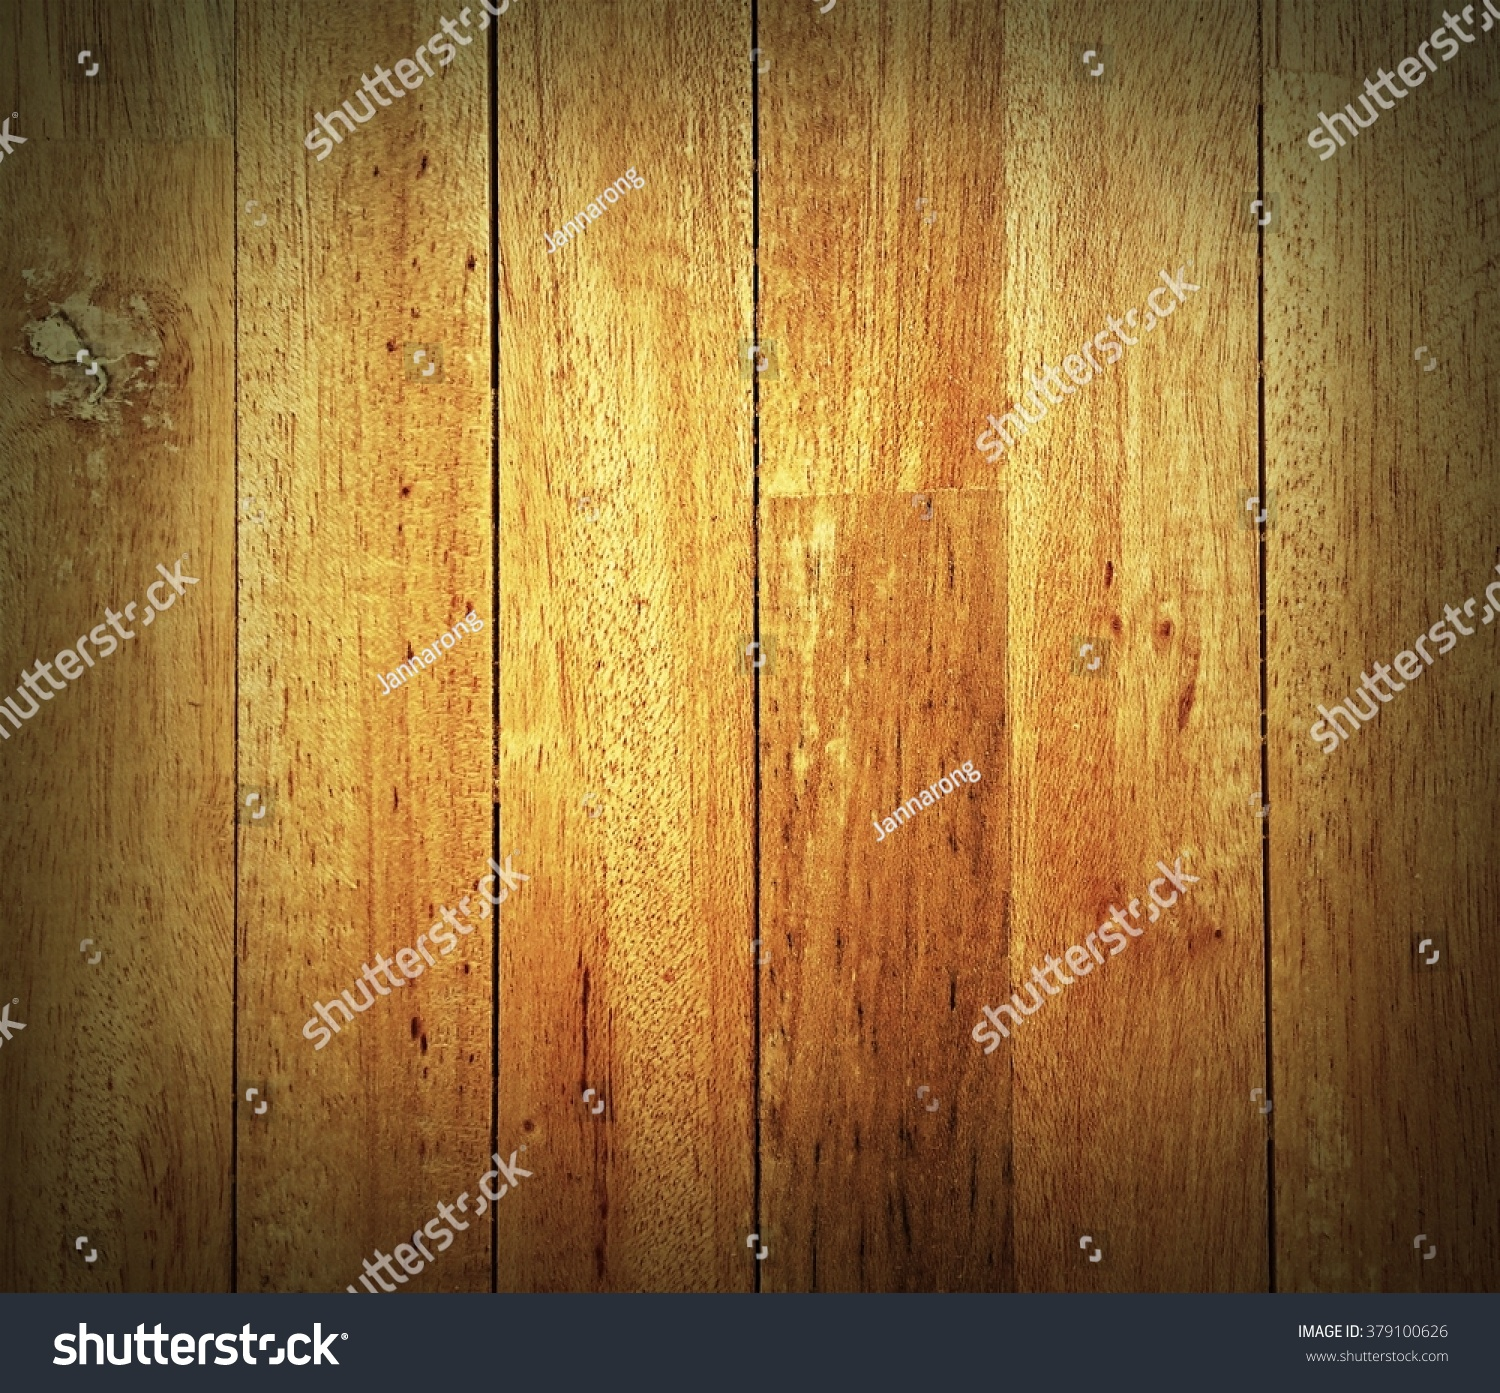 Marvelous photograph of wood panel fine arranged as wall for interior design and exterior  with #AD7F1E color and 1500x1393 pixels